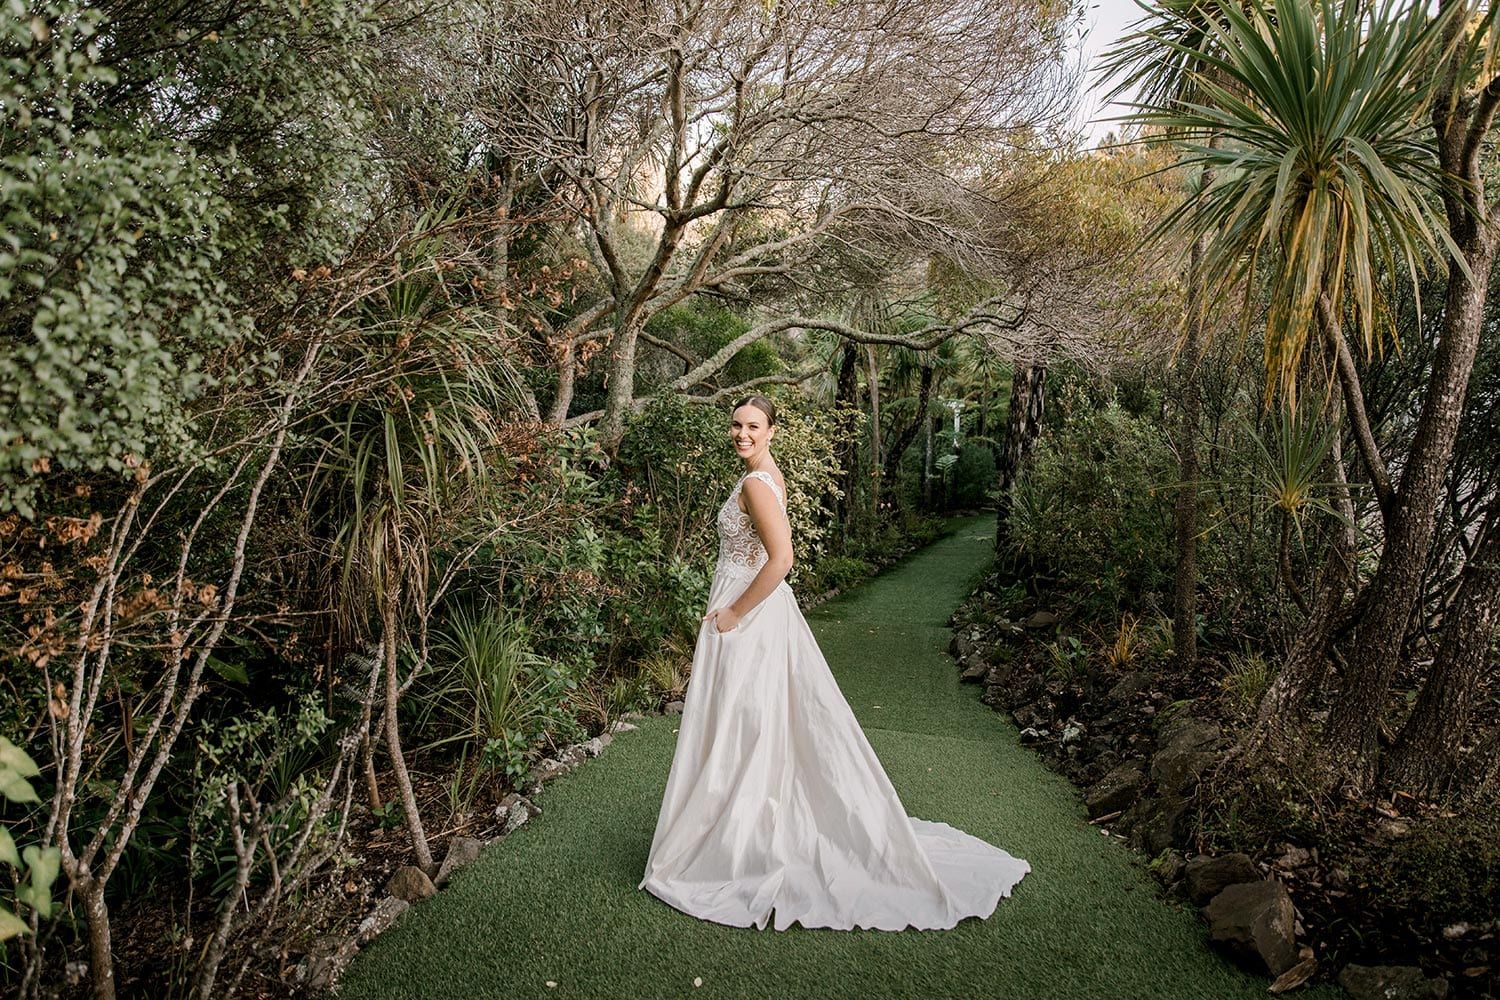 Ashleigh Wedding Dress from Vinka Design. Wedding dress with semi-sheer, richly embroidered fitted bodice on a nude base adorned with guipure lace. Dramatic silk dupion full skirt with side pockets. Dress from side with hands in pockets, photographed at Tui Hills by Emmaline Photography.